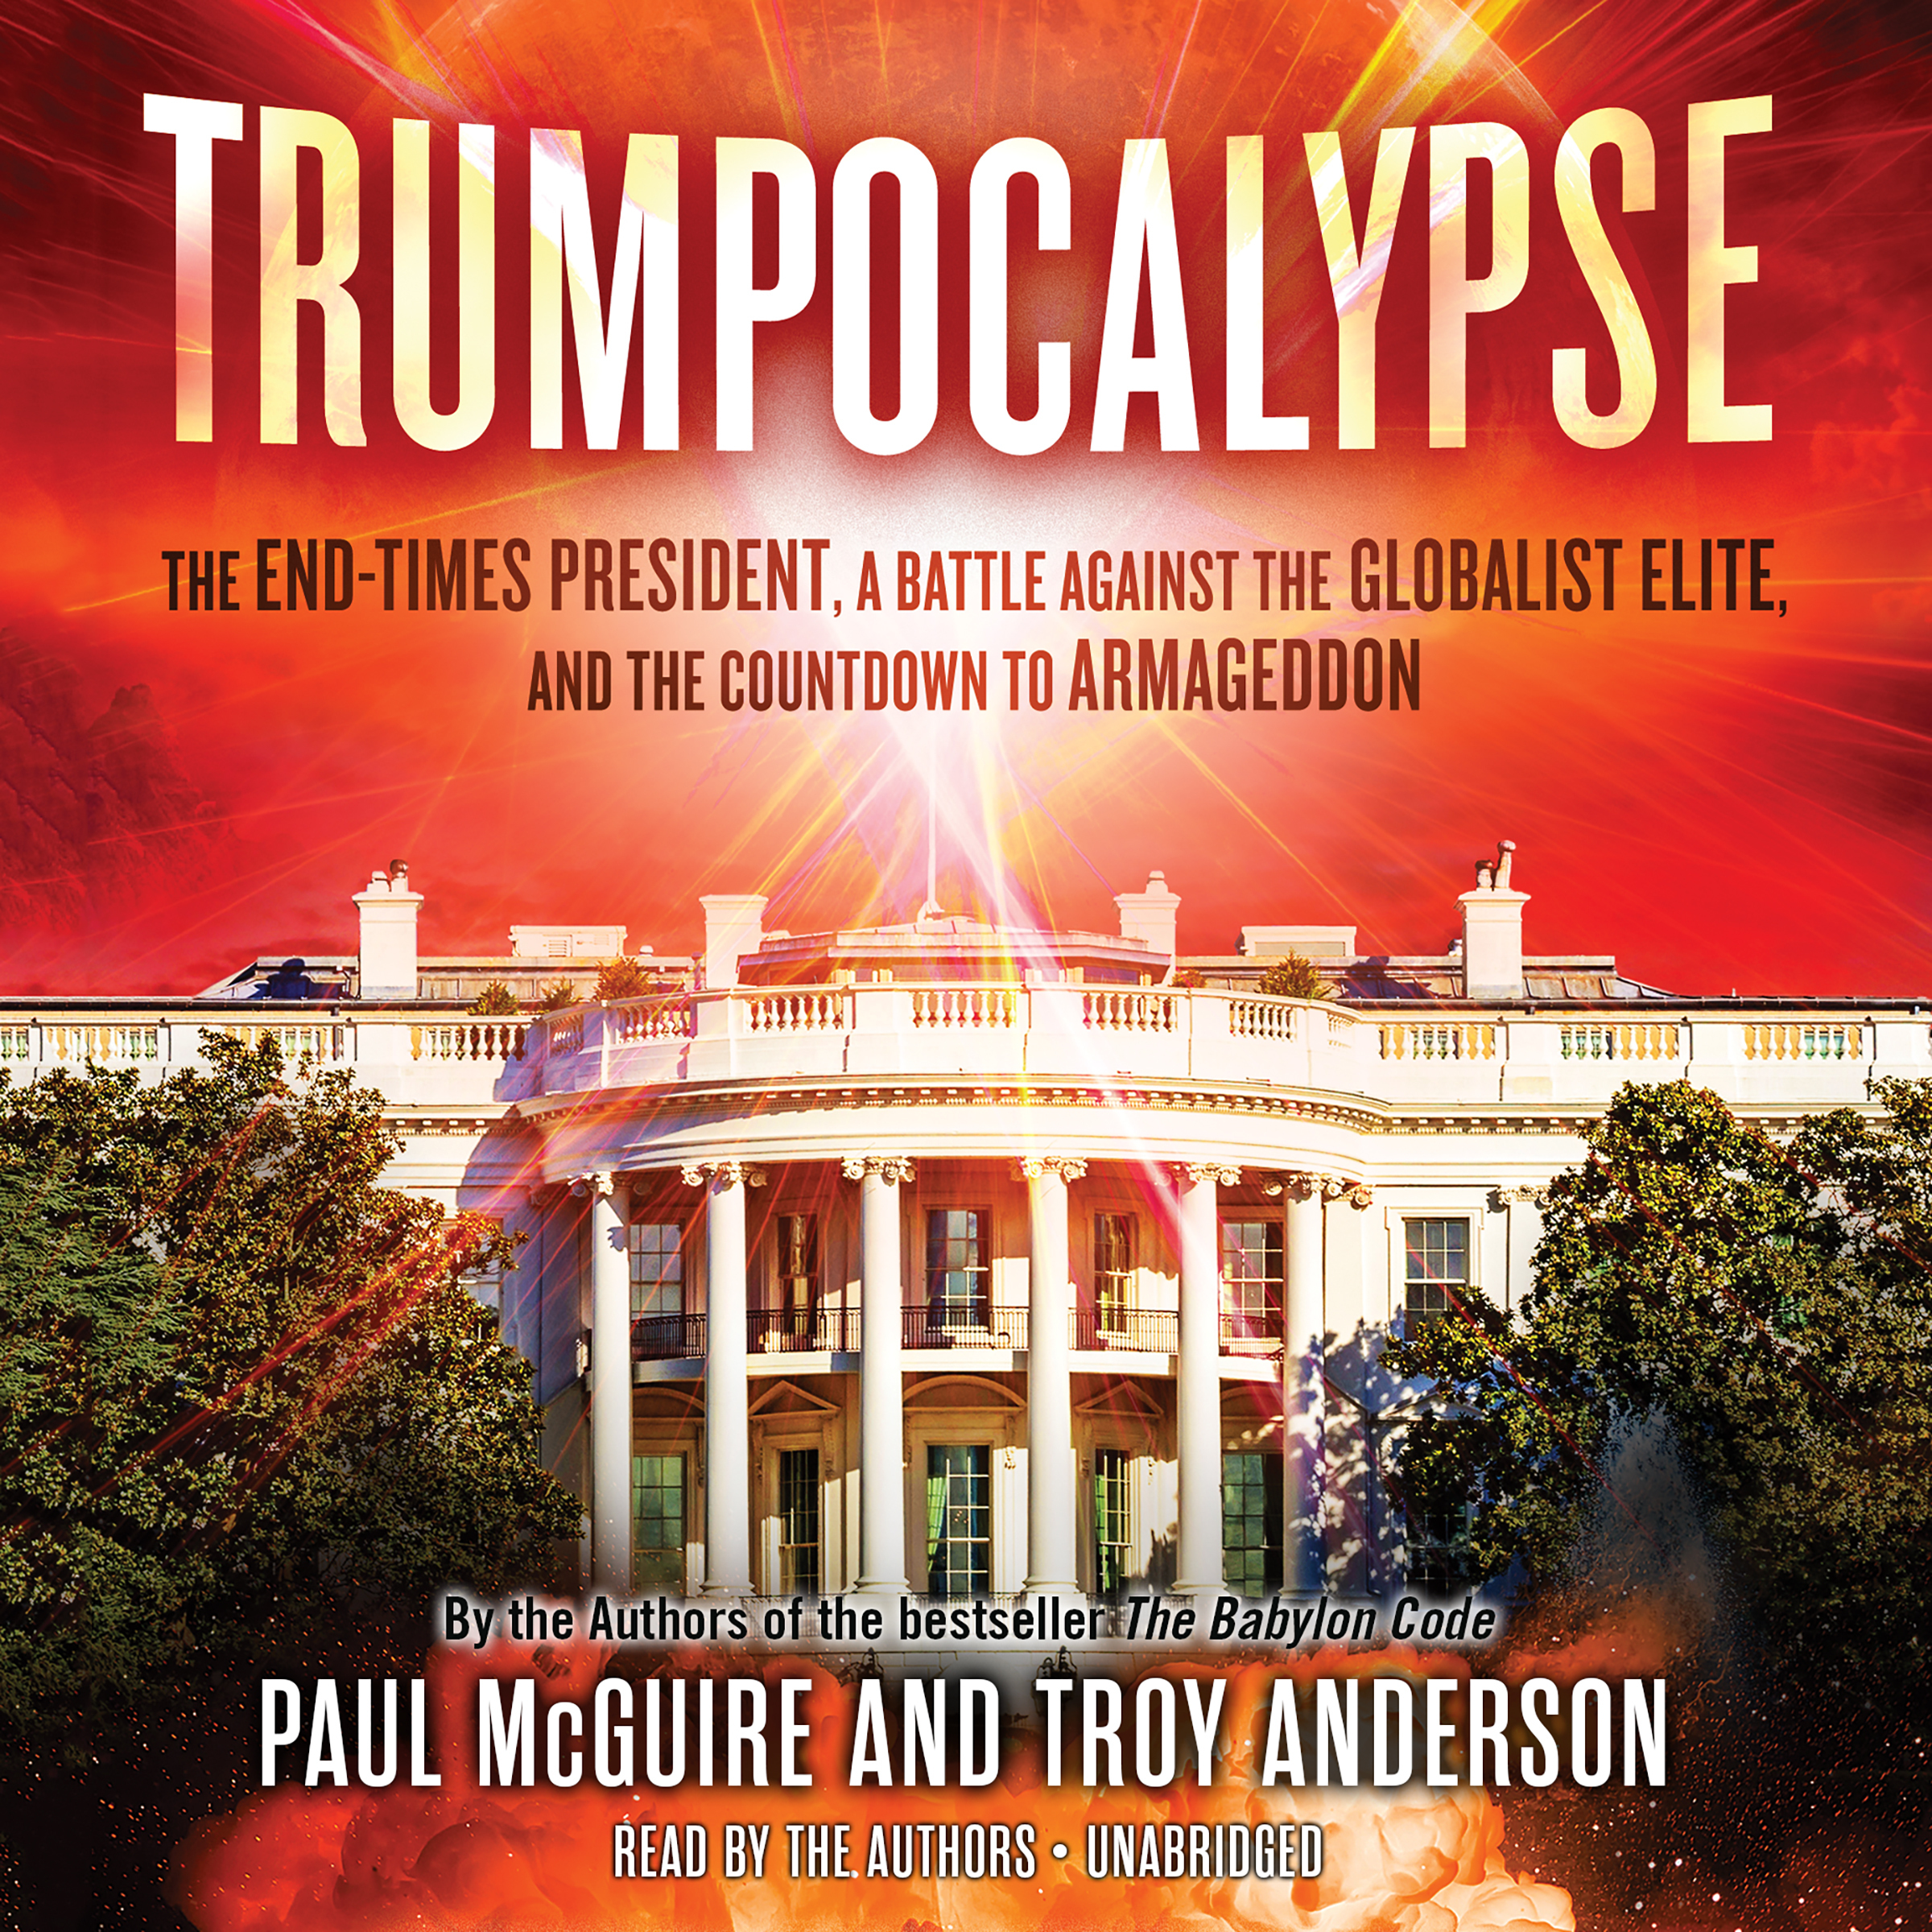 Printable Trumpocalypse: The End-Times President, a Battle Against the Globalist Elite, and the Countdown to Armageddon Audiobook Cover Art